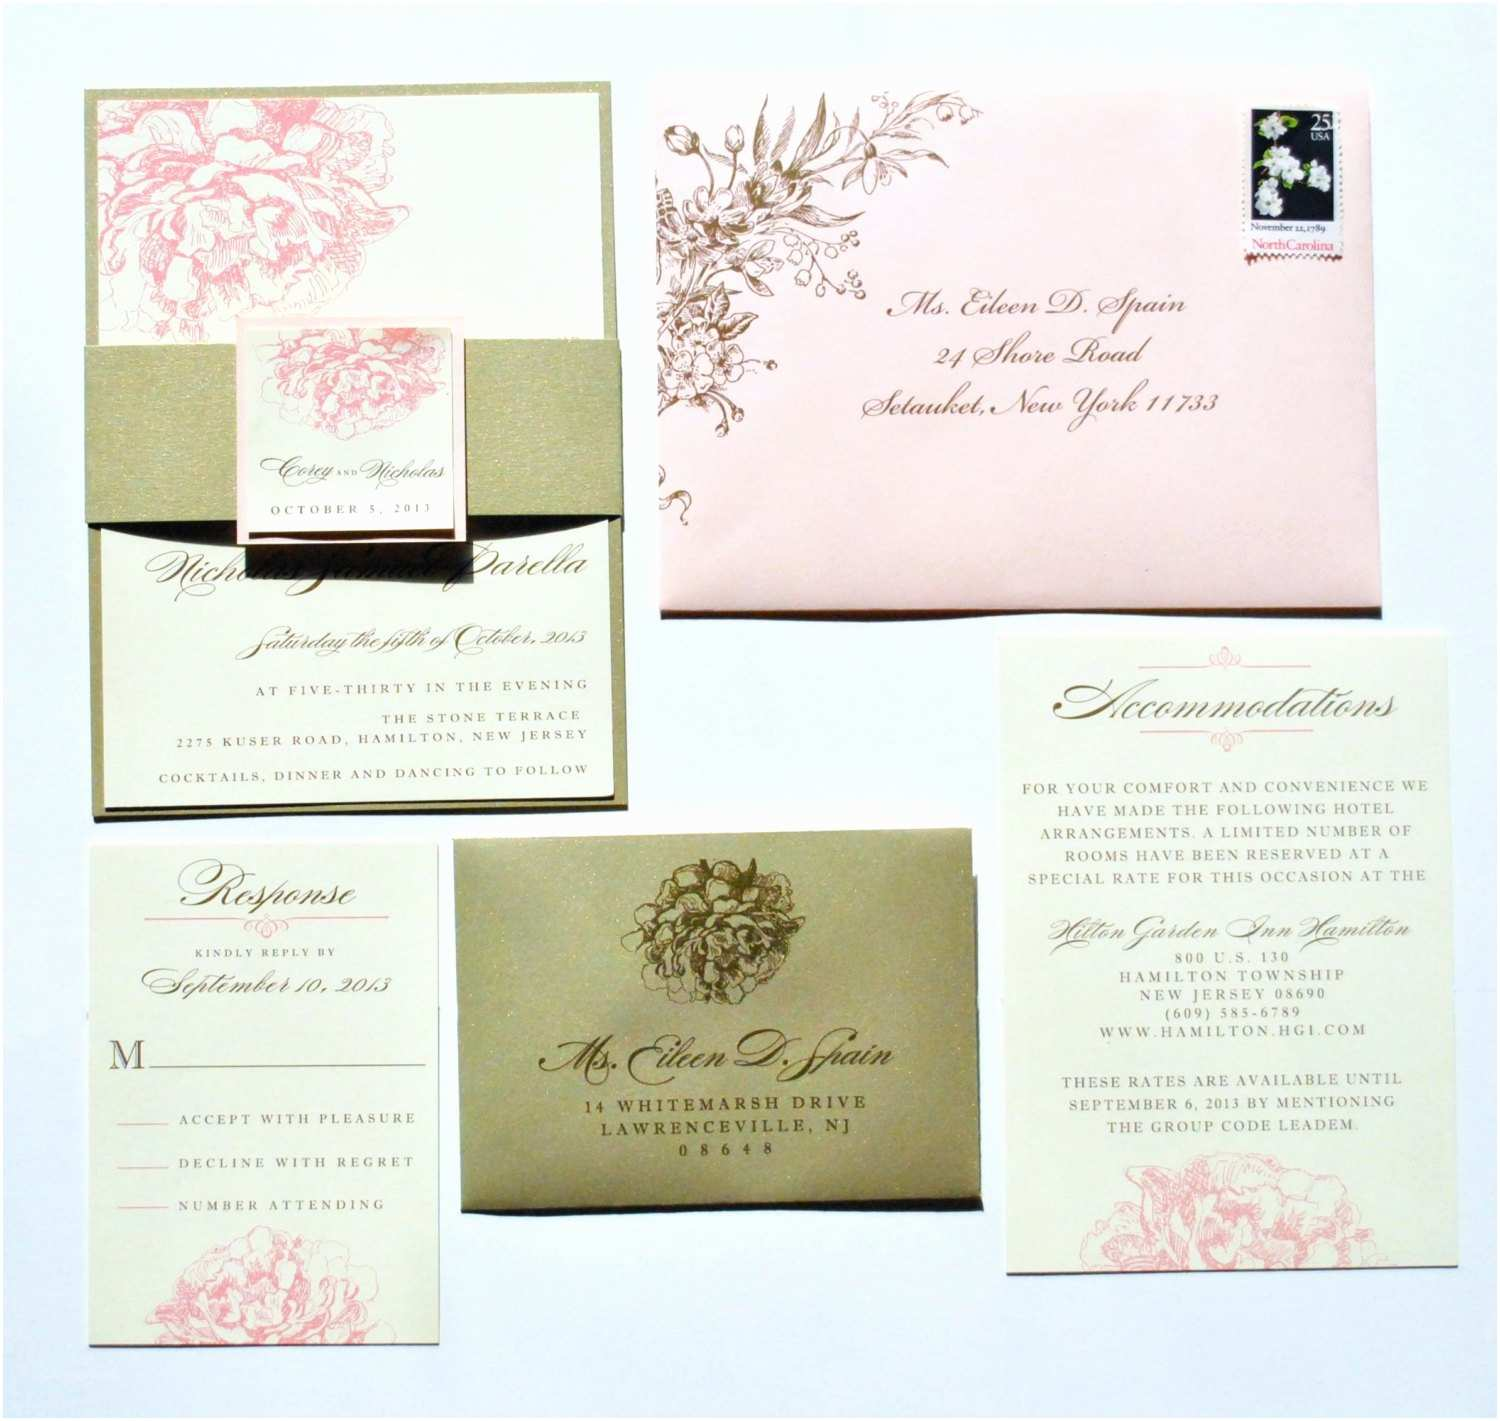 Peony Wedding Invitation Peony Wedding Invitations Pink Peony Invitations Romantic